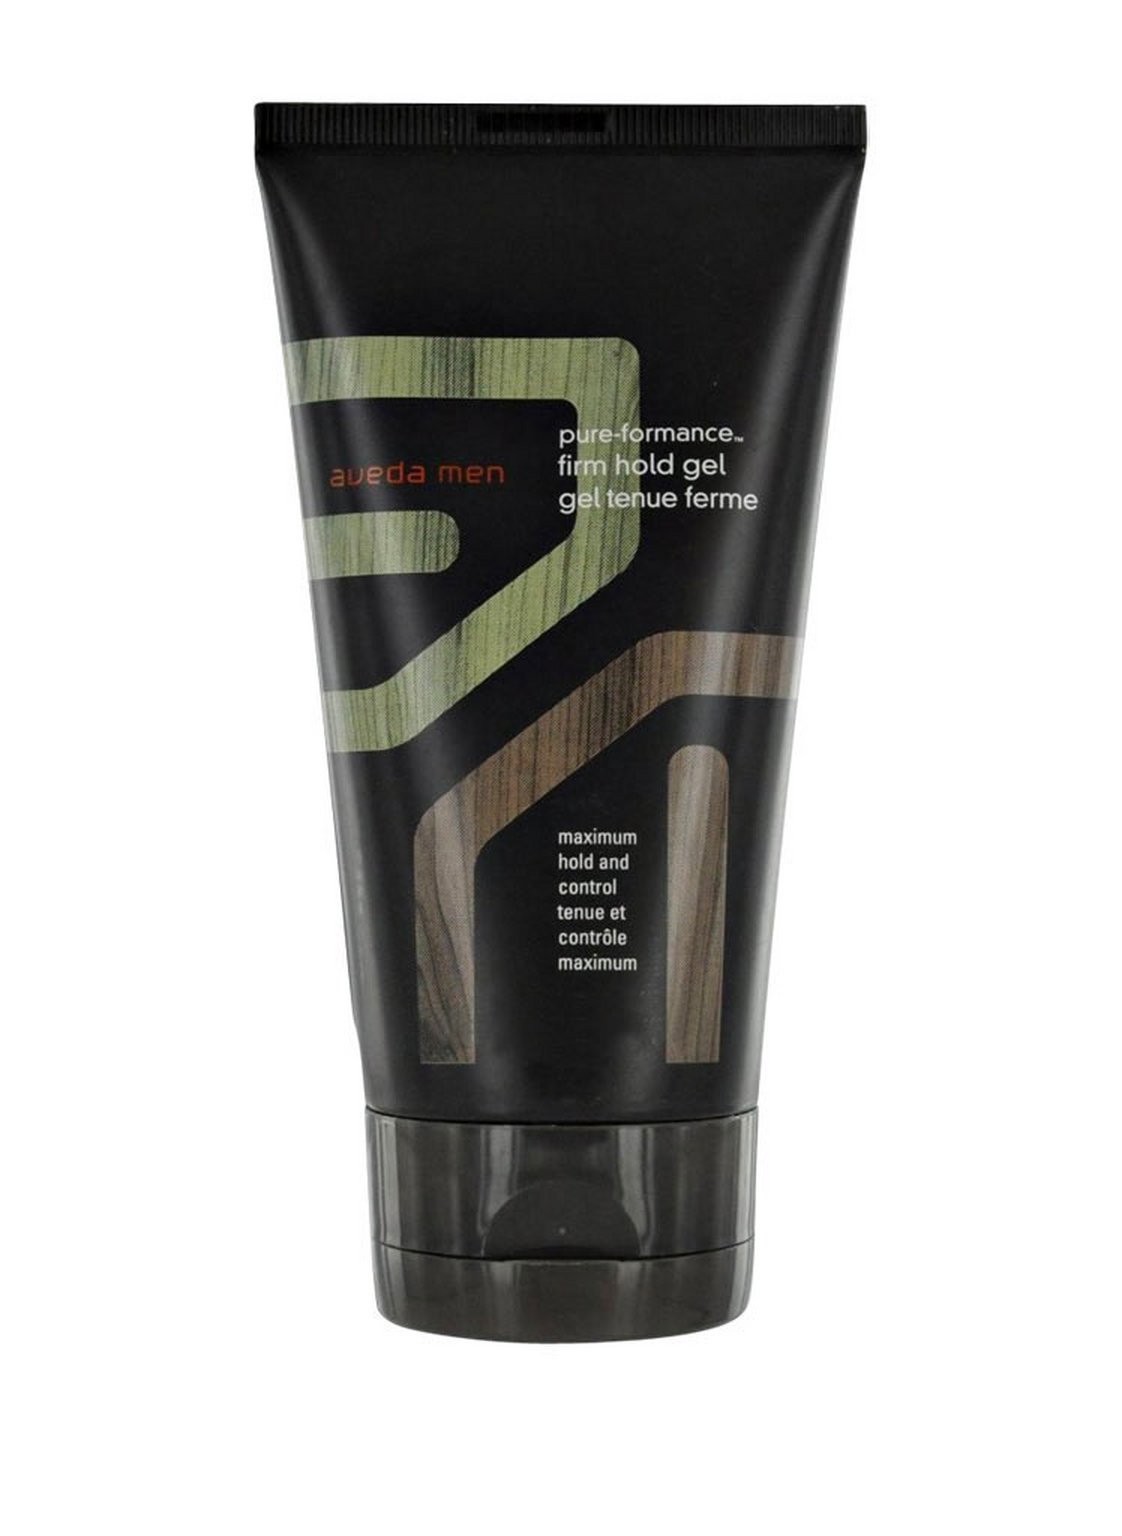 Image of Aveda Aveda Men Pure-Formance Firm Hold Gel 150 ml